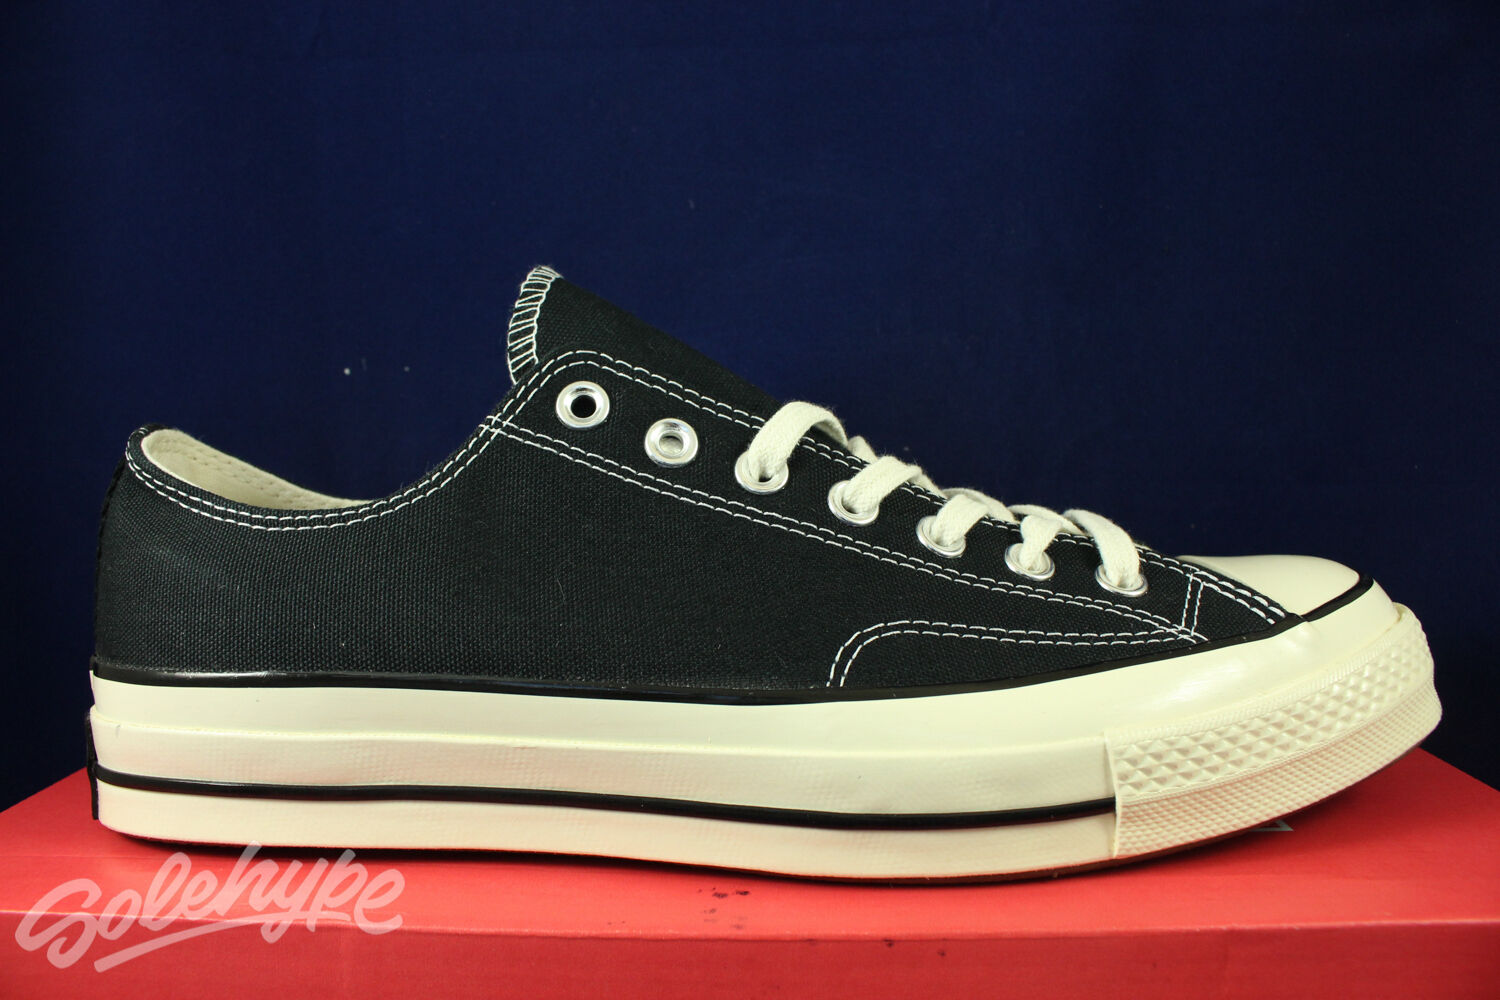 CONVERSE CHUCK TAYLOR ALL STAR 70 OX BLACK FIRST STRING CT 1970 144757C SZ 11